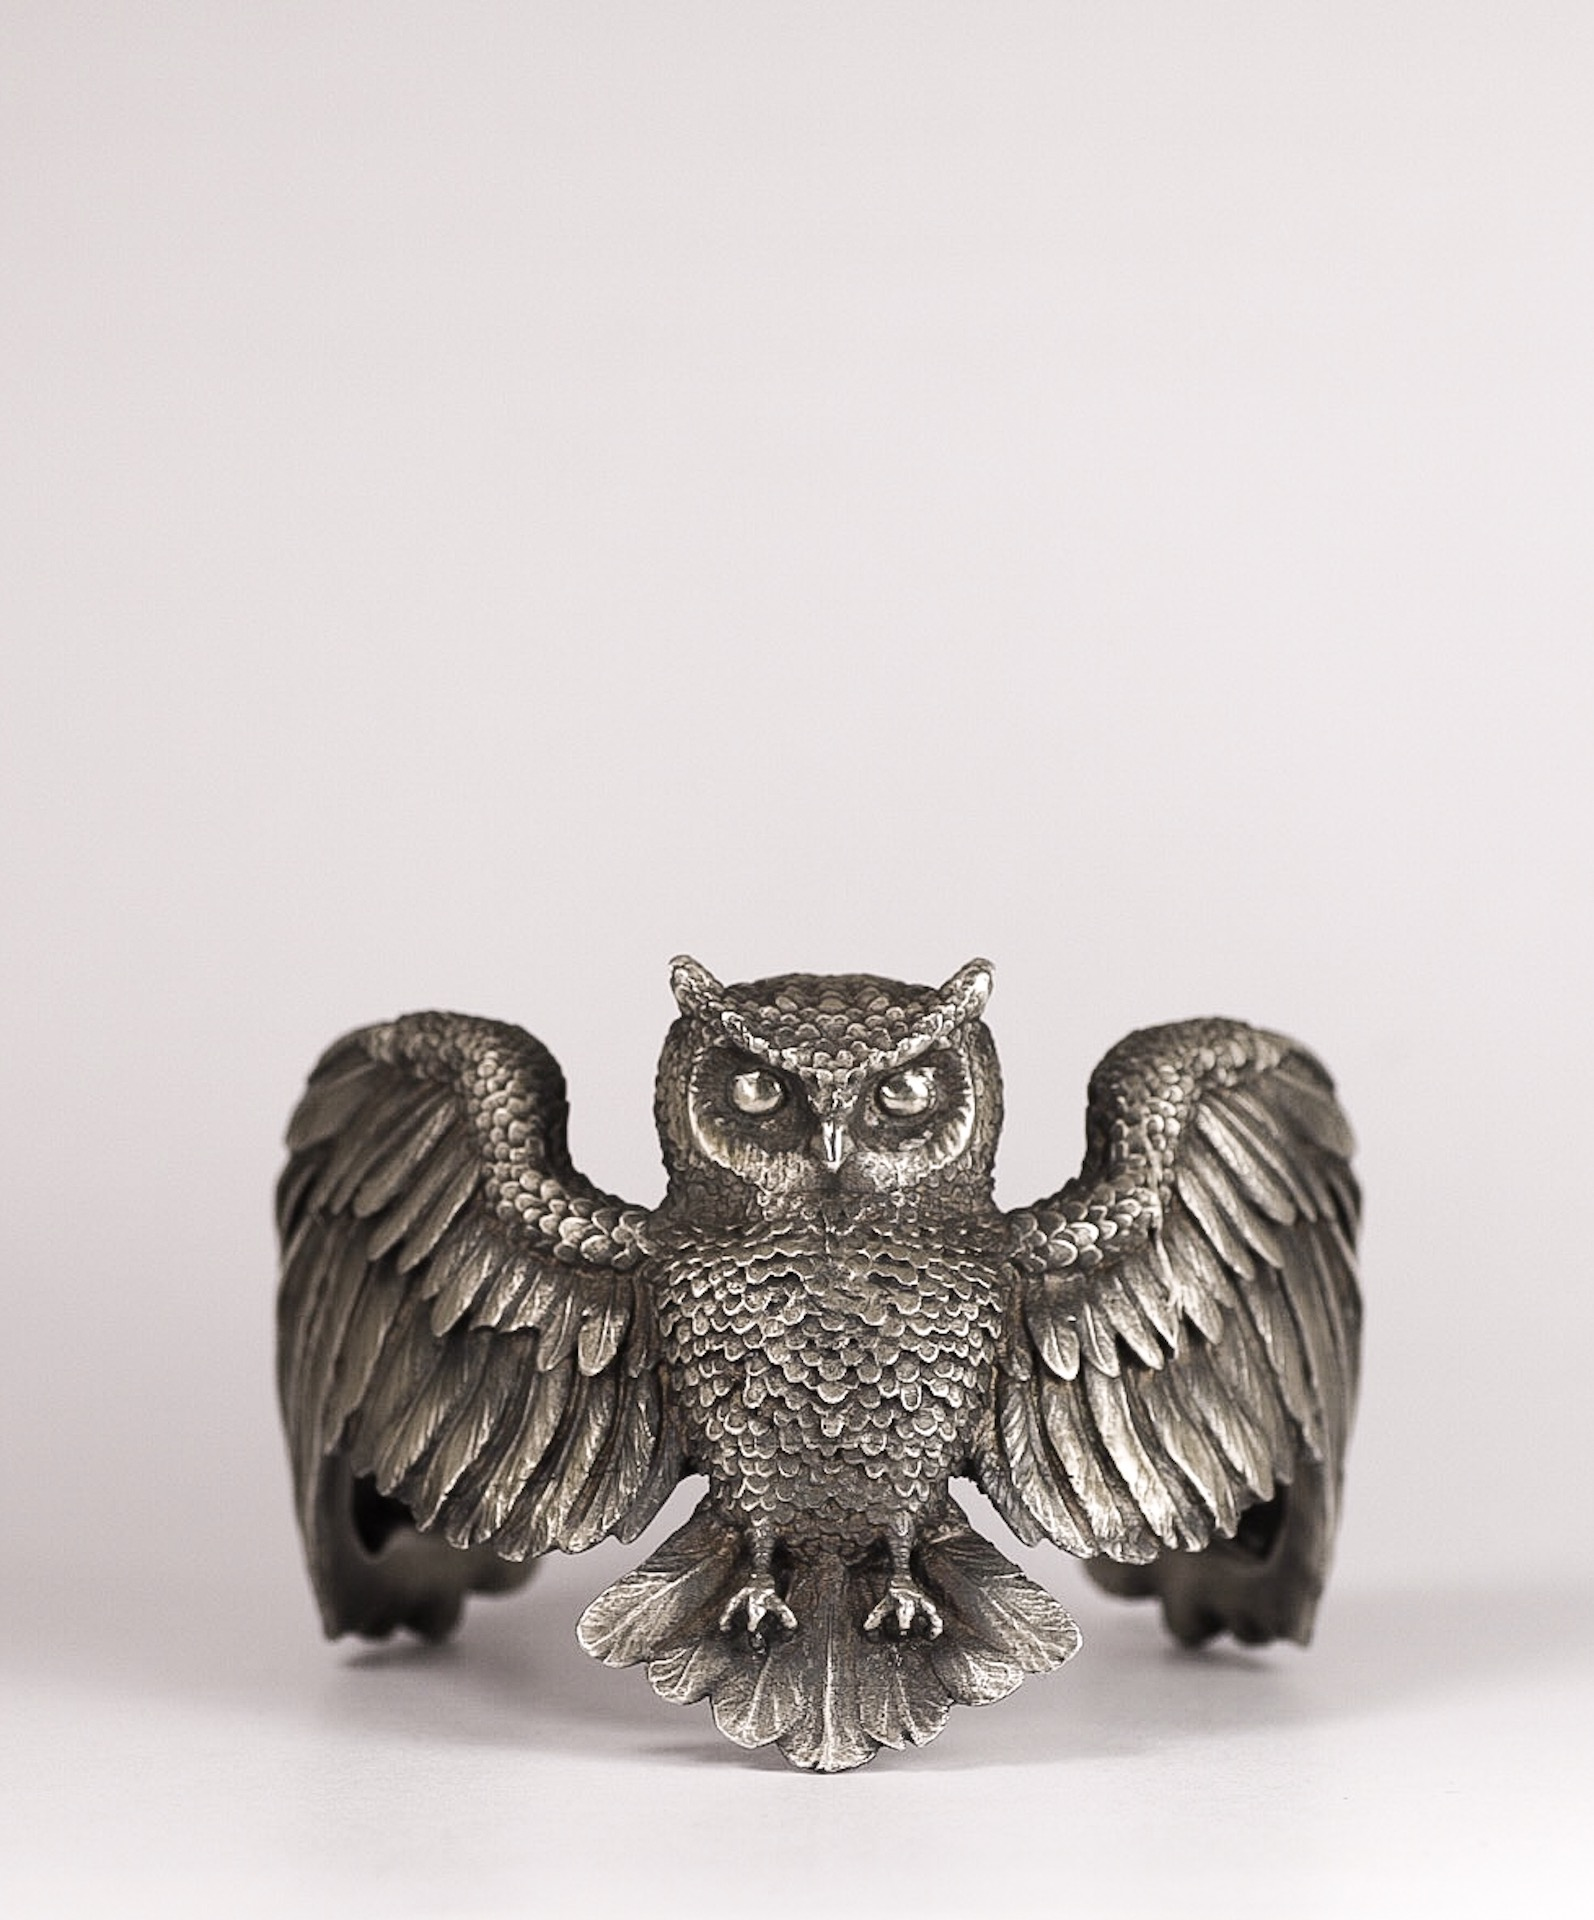 For a wise customer that just loves owls. An owl cuff in antiqued sterling silver, 3d modelled in Zbrush.